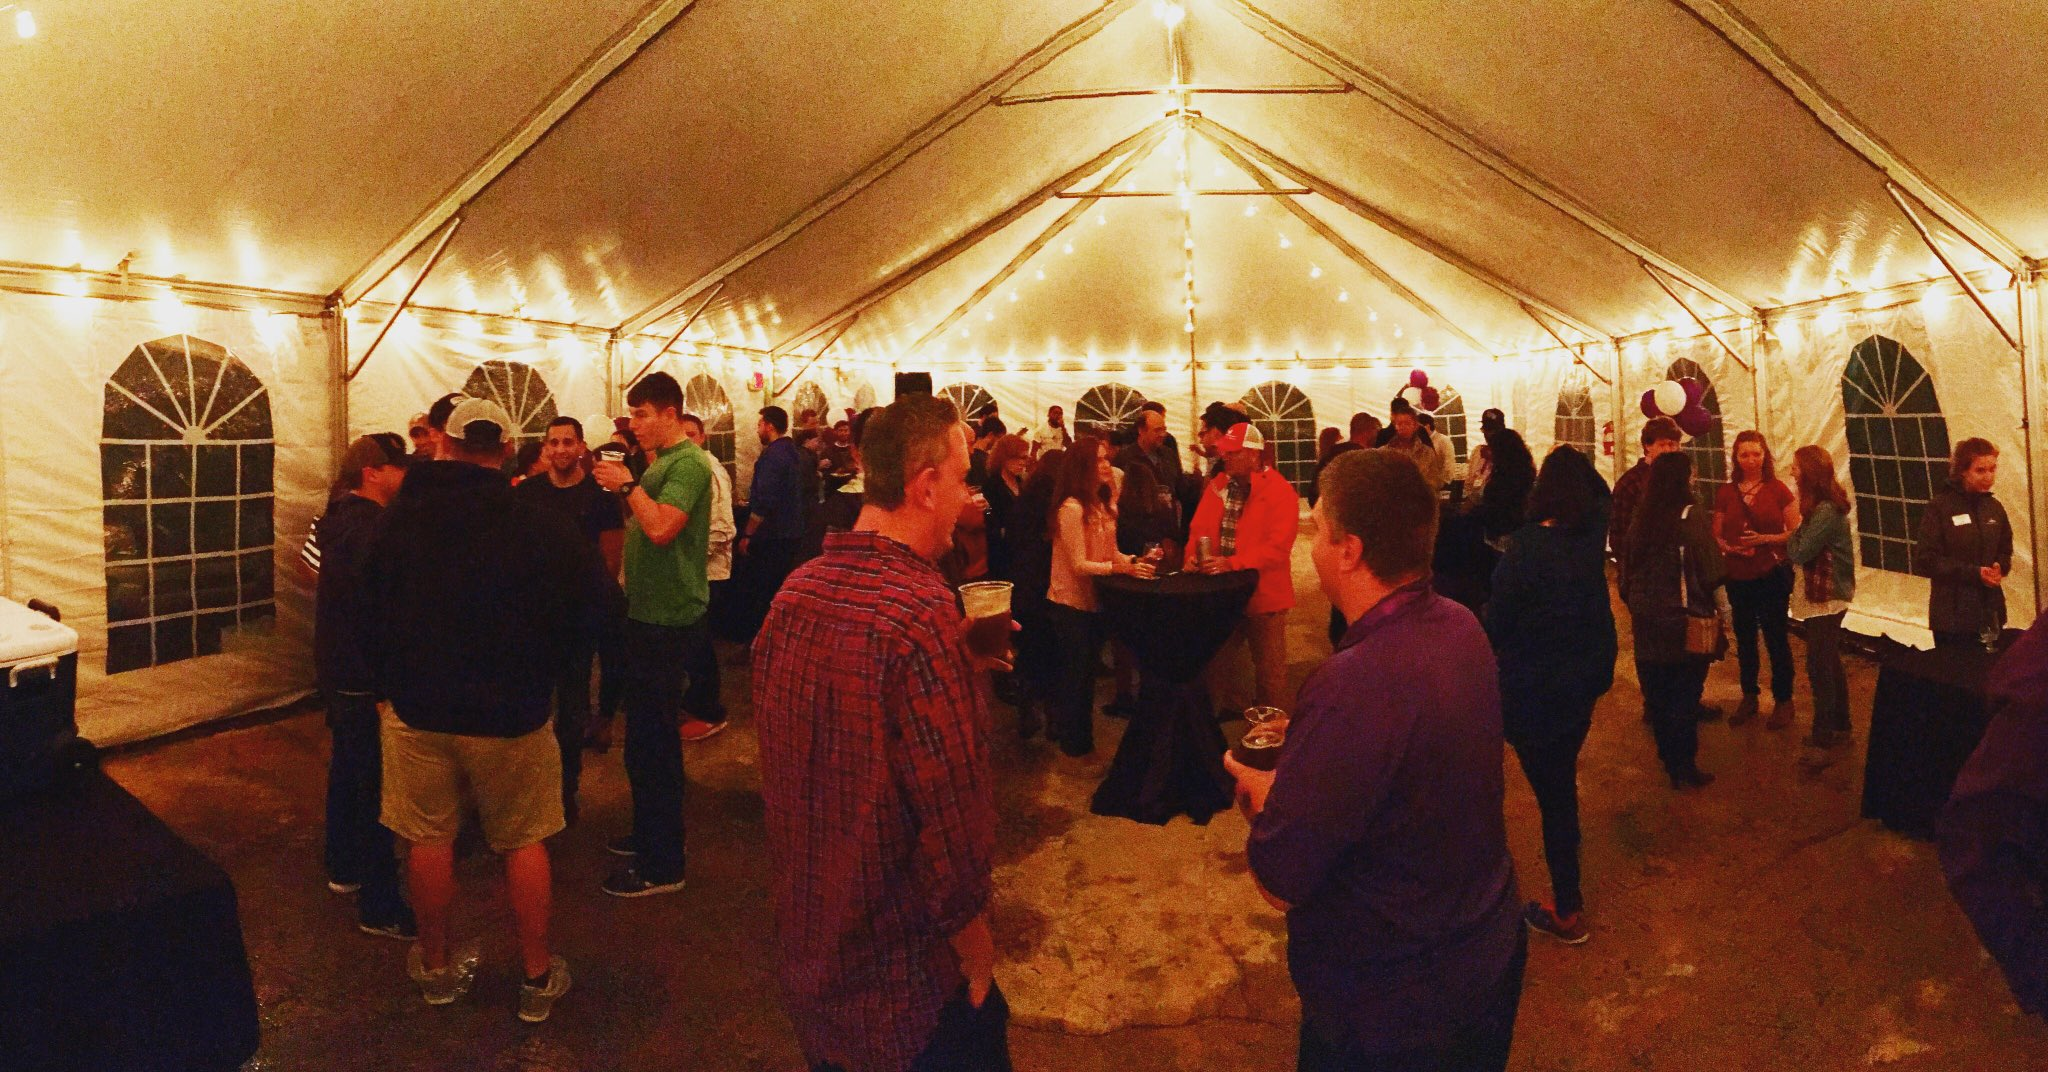 Oktoberfest is packed at @browntruckbrew for #HPUAlumniWeekend2016! We ❤️️ our #HPUAlum! https://t.co/n99XyABB5S